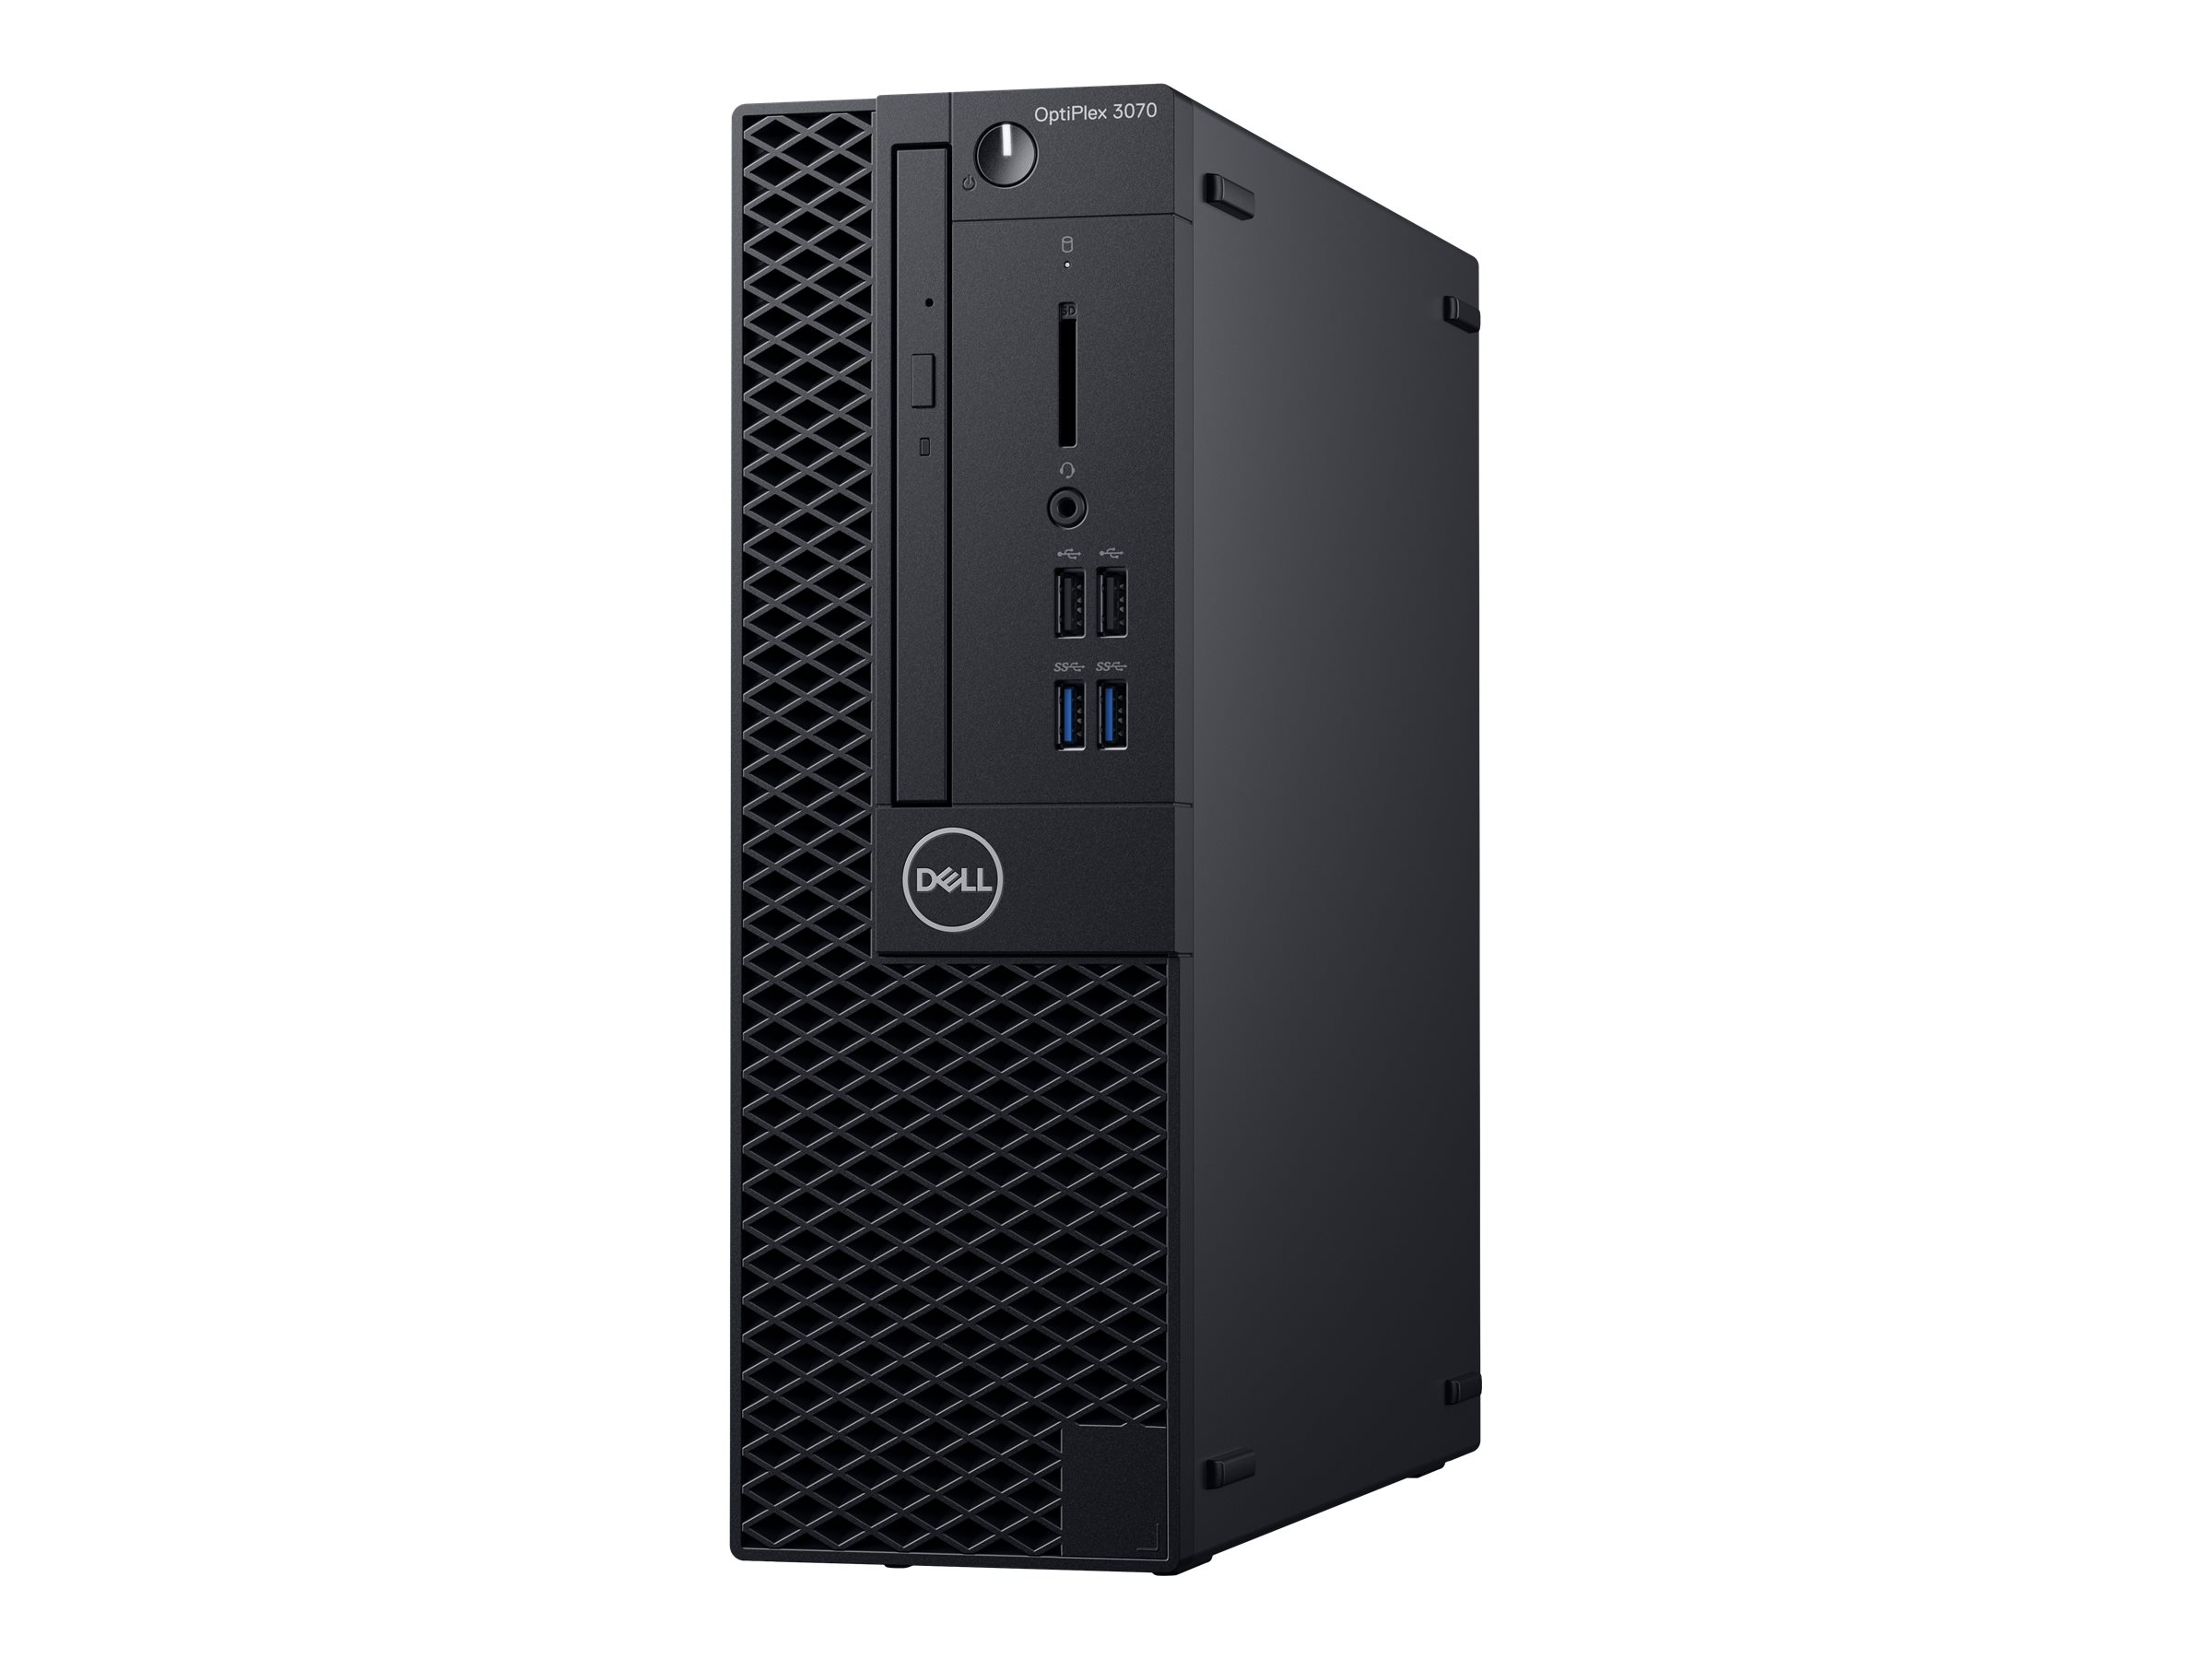 Dell OptiPlex 3070 - SFF - Core i3 9100 3.6 GHz - 8 GB - SSD 128 GB - with 3-year ProSupport NBD